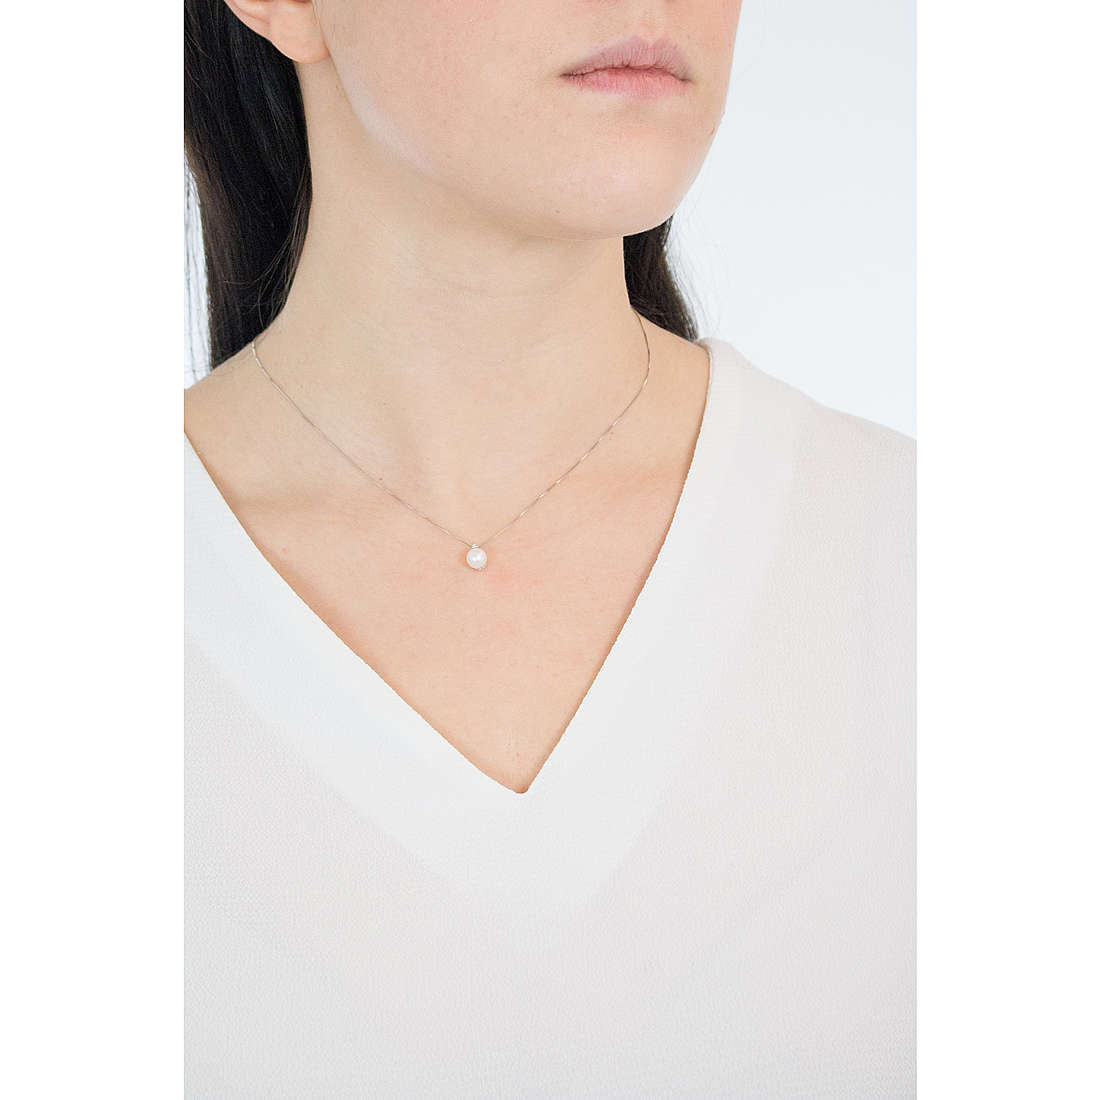 Comete colliers femme GLP 442 photo wearing